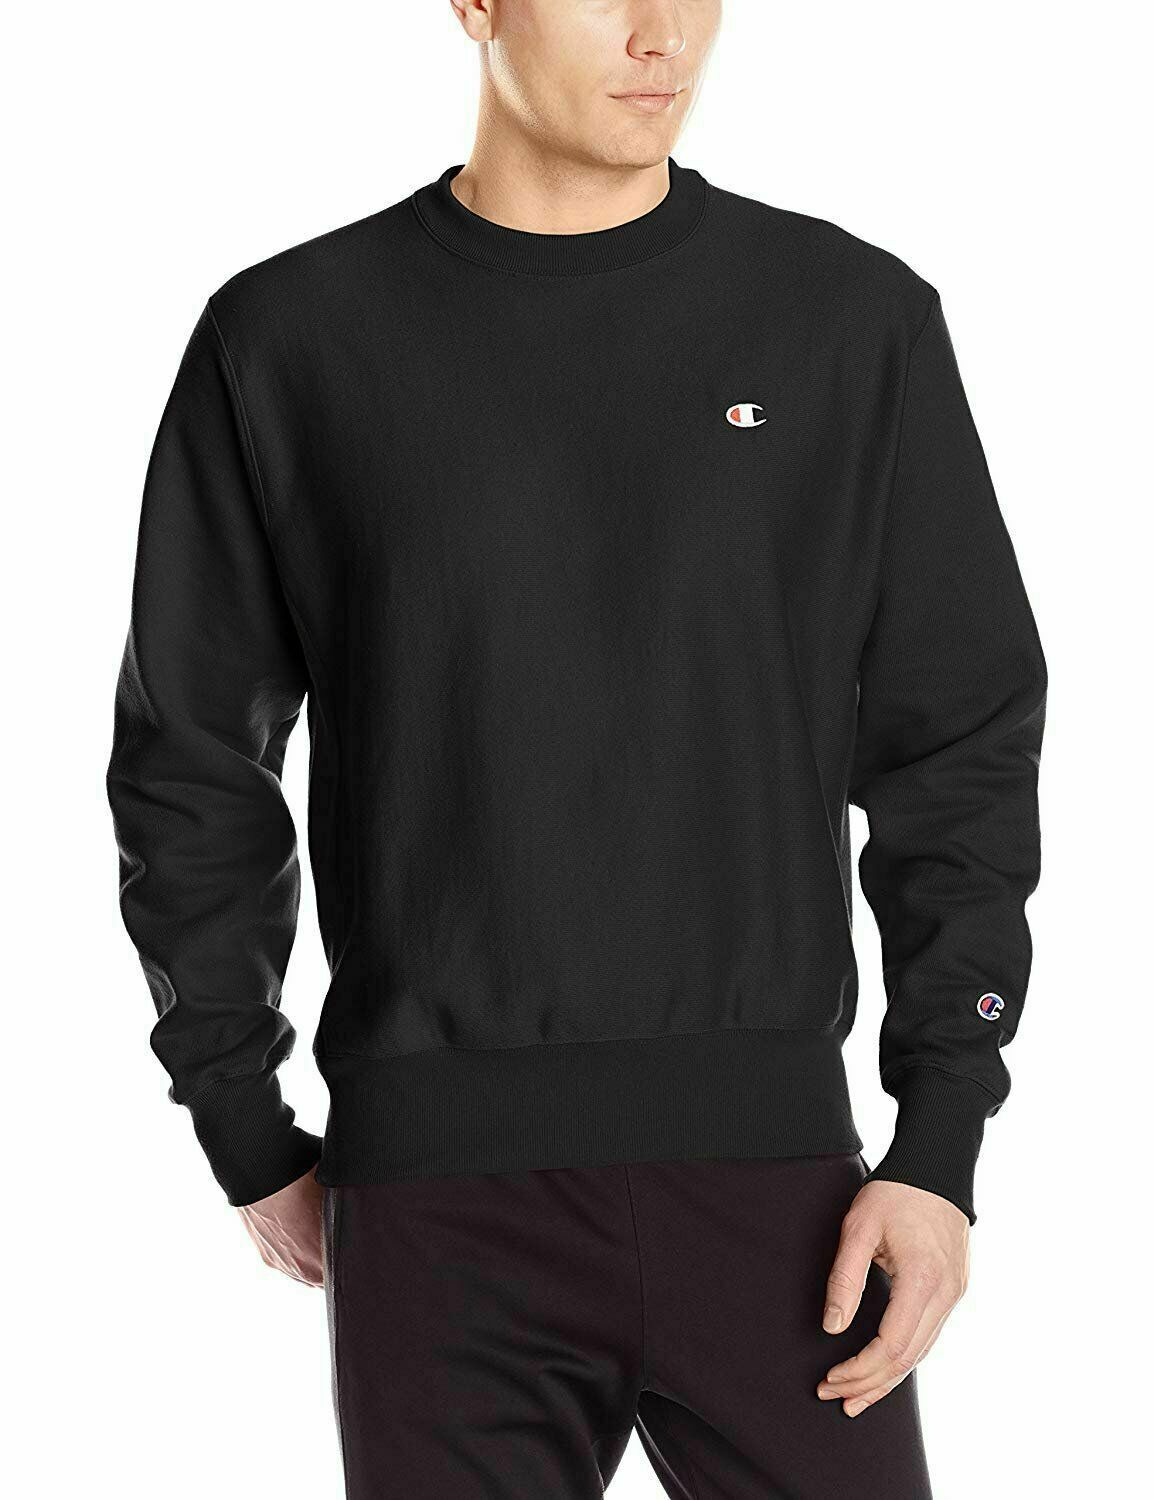 Champion Life Reverse Weave Sweatshirt Black Men's Medium Crew Neck Long Sleeve image 7